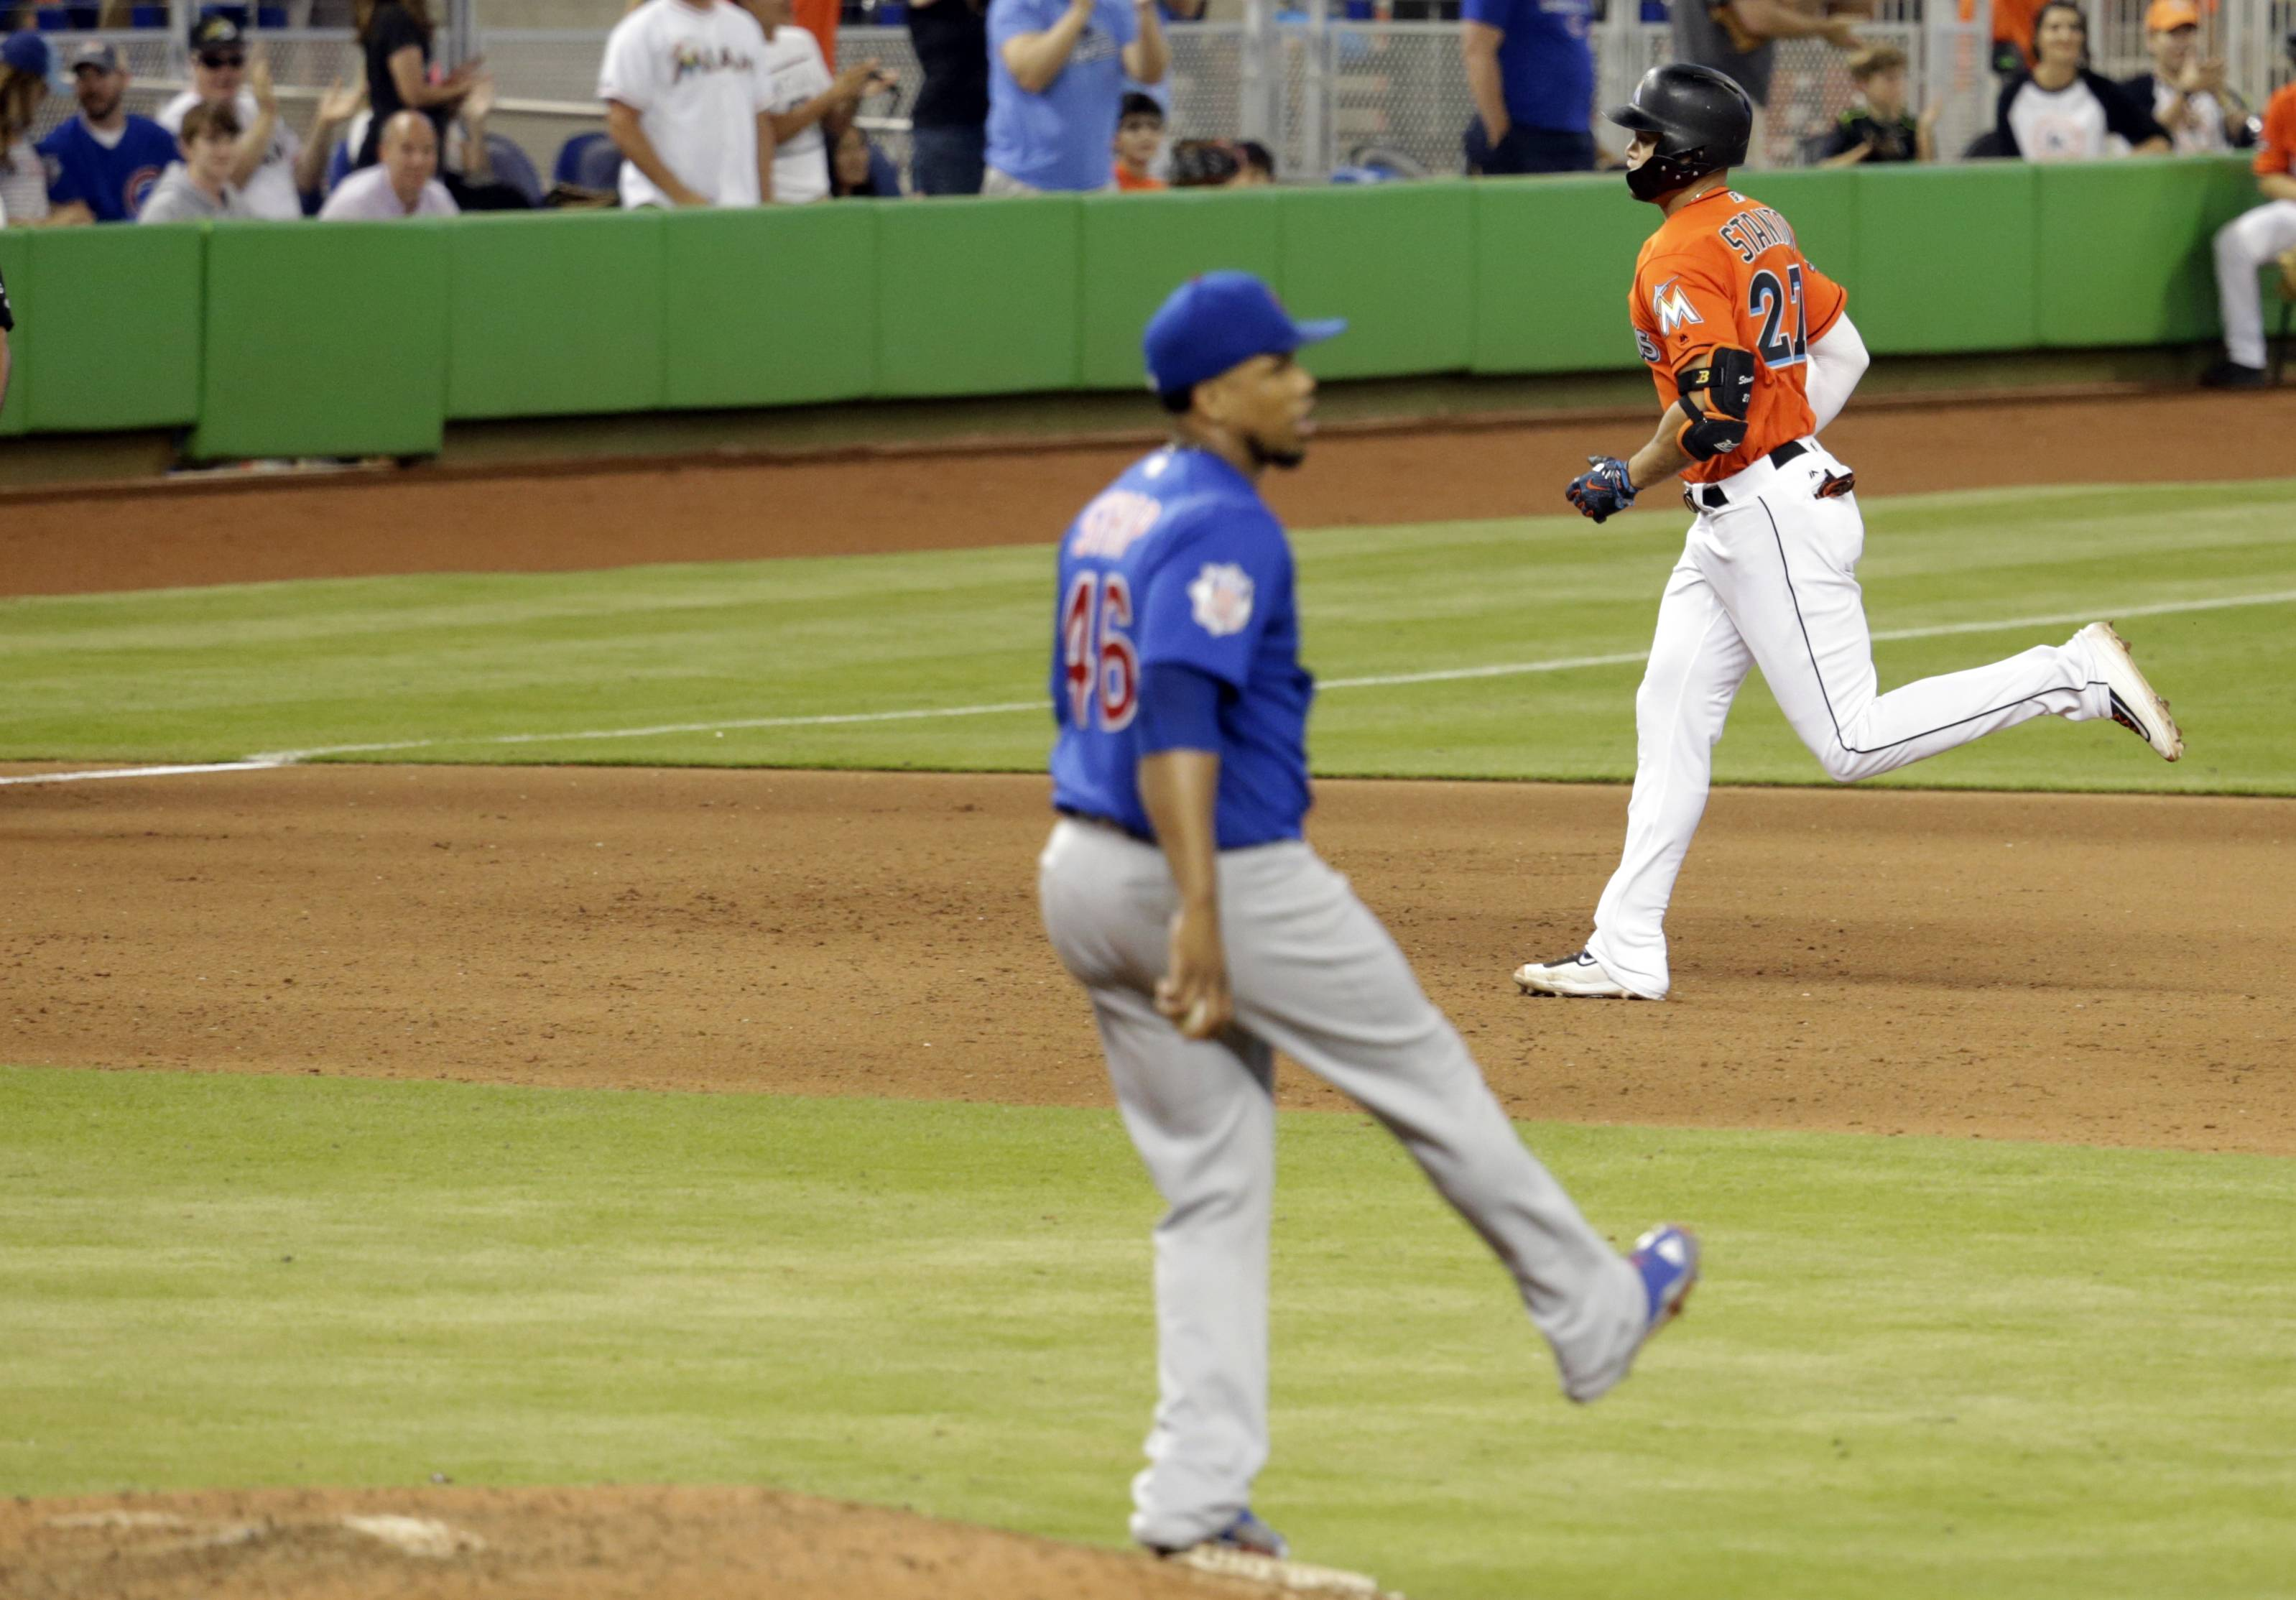 Miami Marlins' Giancarlo Stanton, right, rounds the bases after hitting a solo home run off Chicago Cubs relief pitcher Pedro Strop, left, during the seventh inning of a baseball game, Sunday, June 25, 2017, in Miami. (AP Photo/Lynne Sladky)